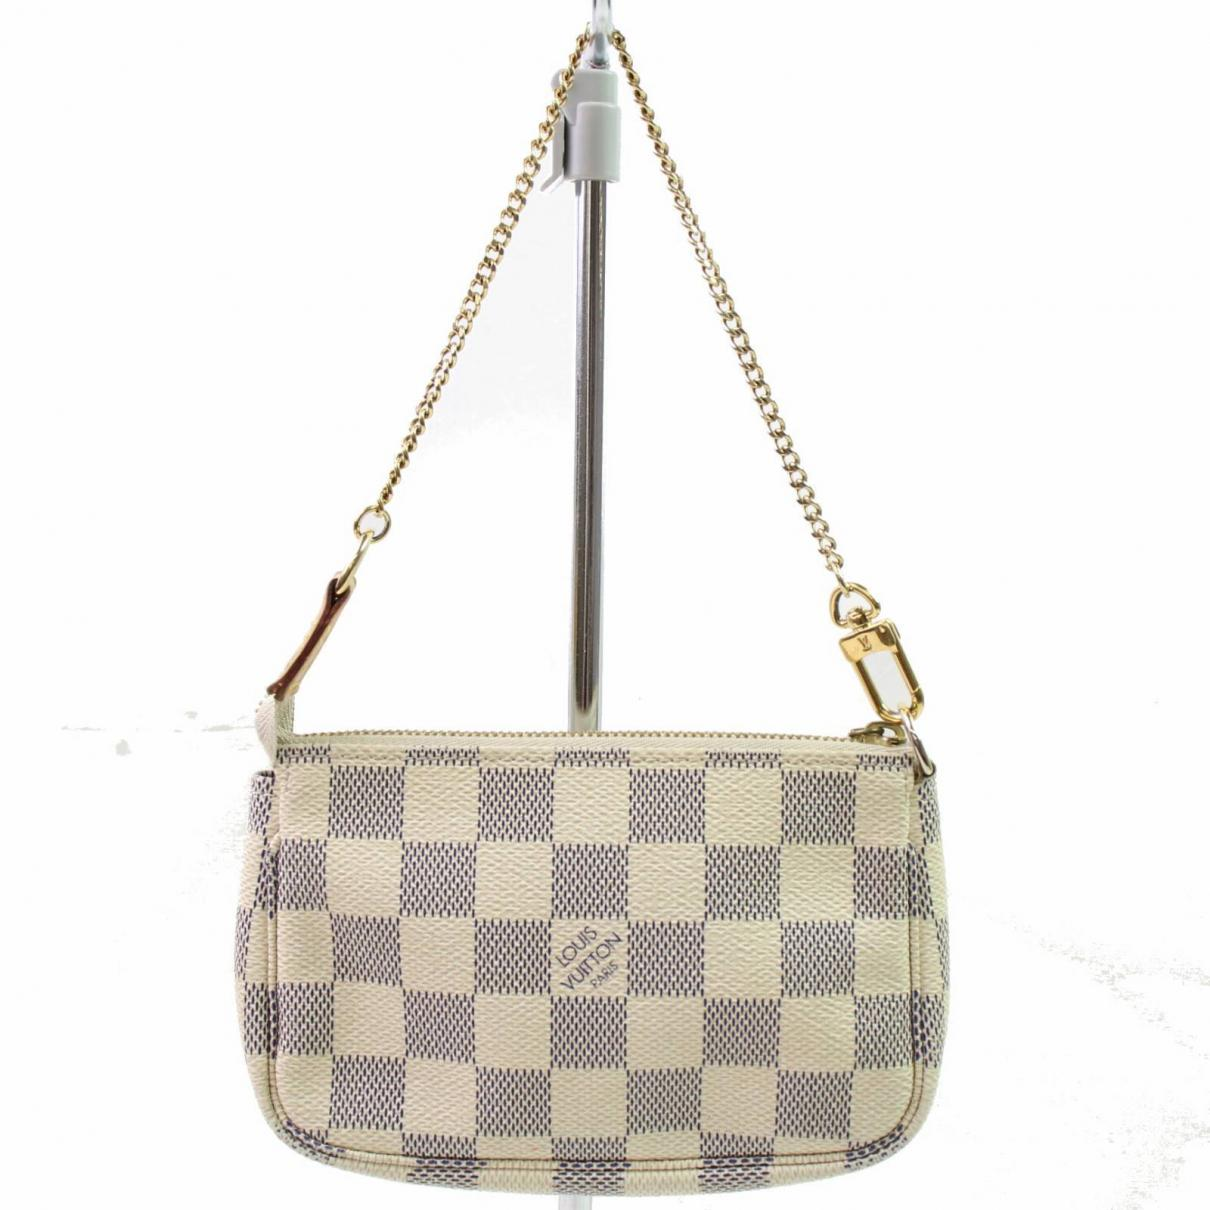 b46fe260ca5a Lyst - Louis Vuitton Pochette Accessoire Leather Clutch Bag in Metallic